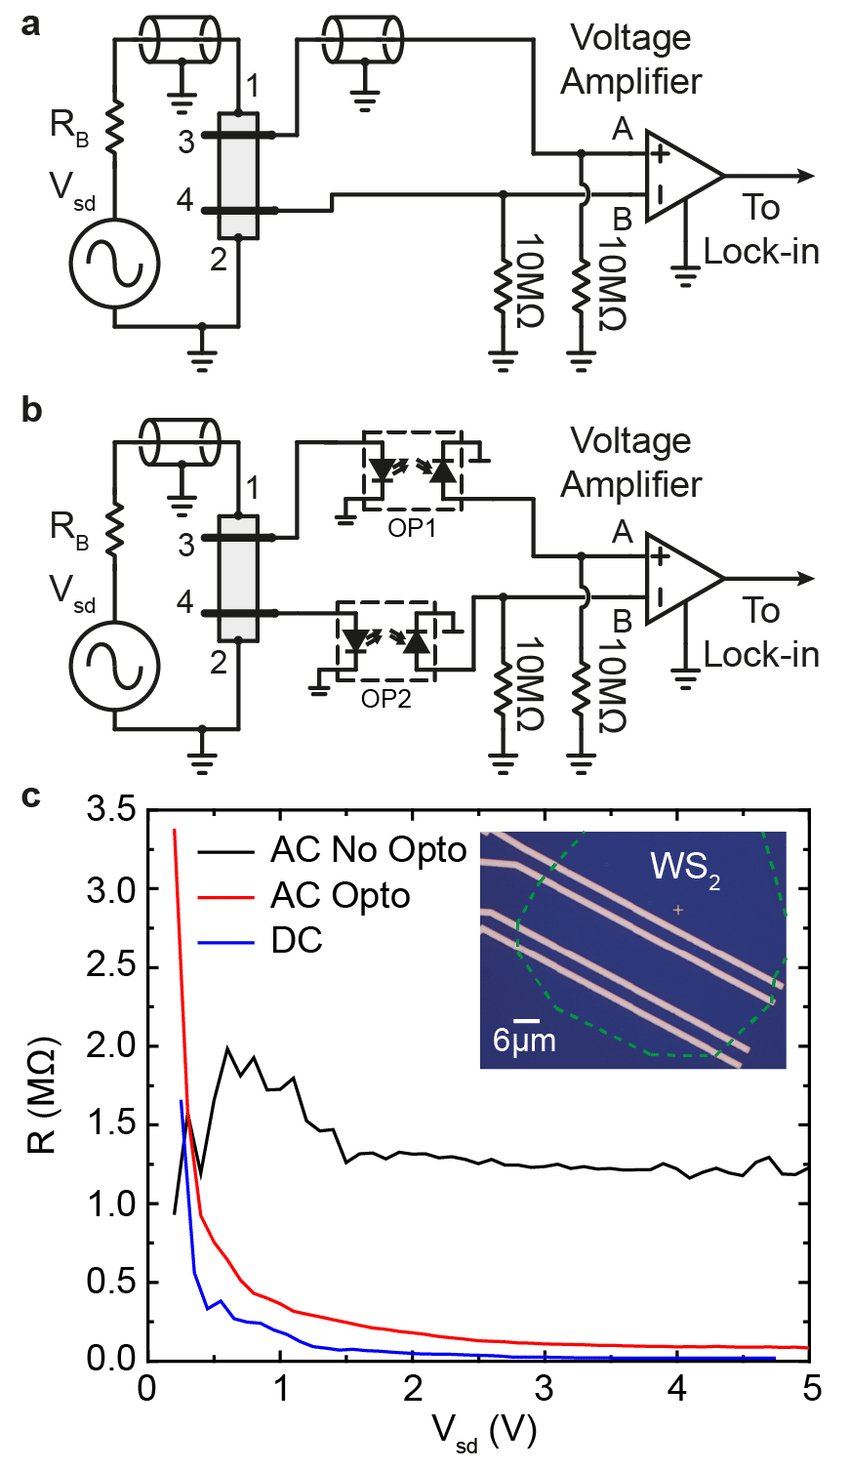 medium resolution of characterization of a ws 2 field effect transistor a electrical circuit configuration for